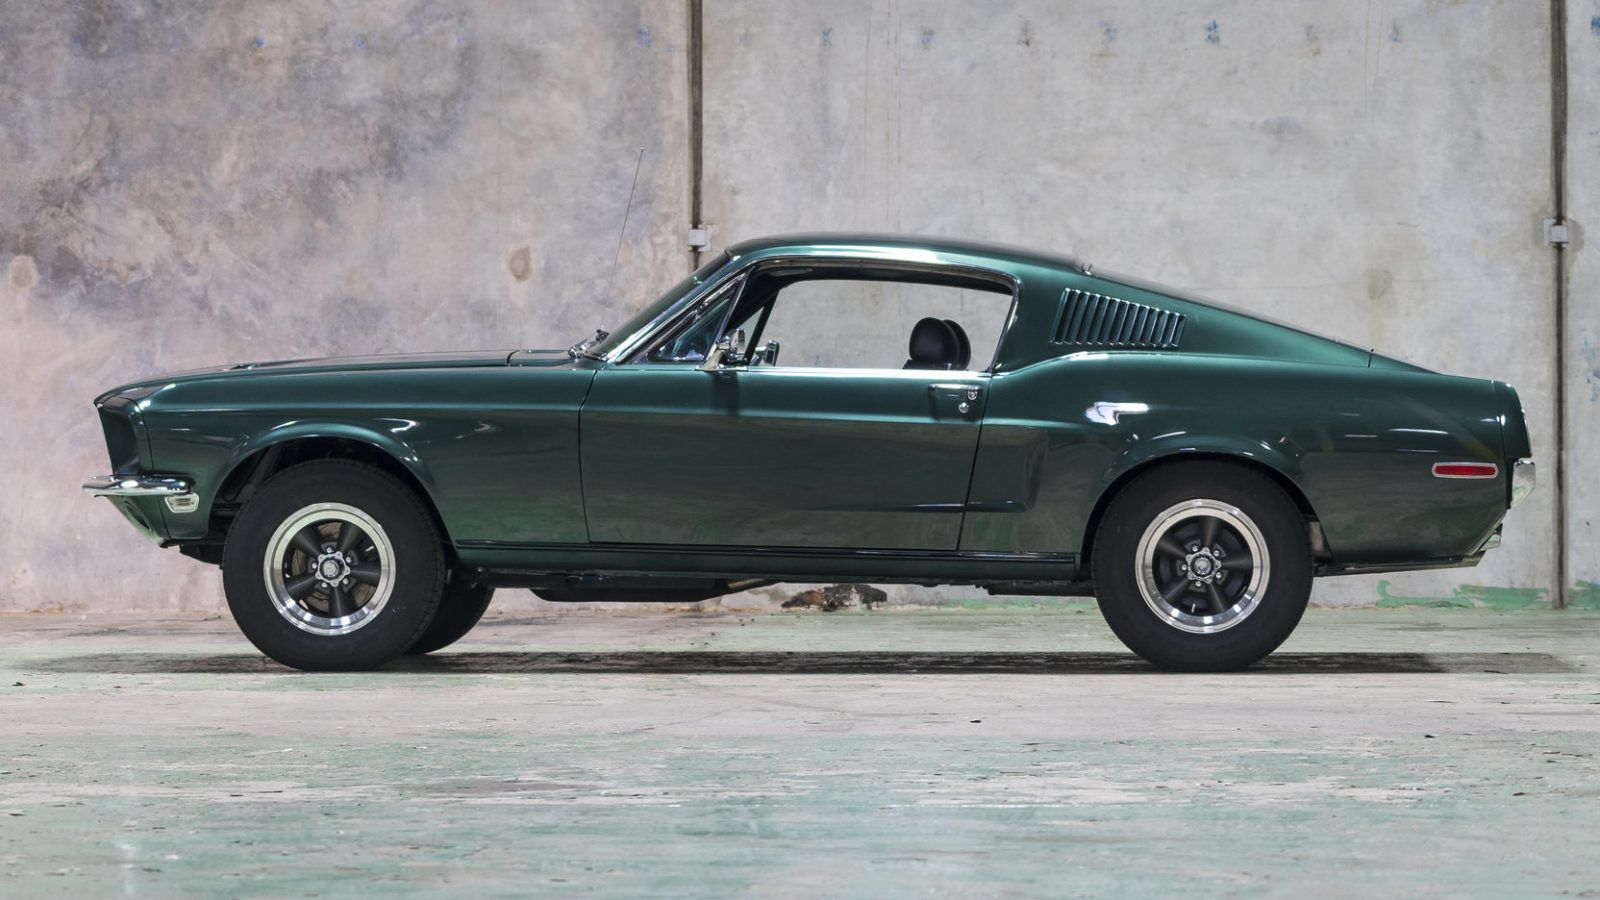 Steve mcqueen and bullitt there are few movie cars more famous than steve mcqueens highland green mustang fastback from the 1968 film bullitt